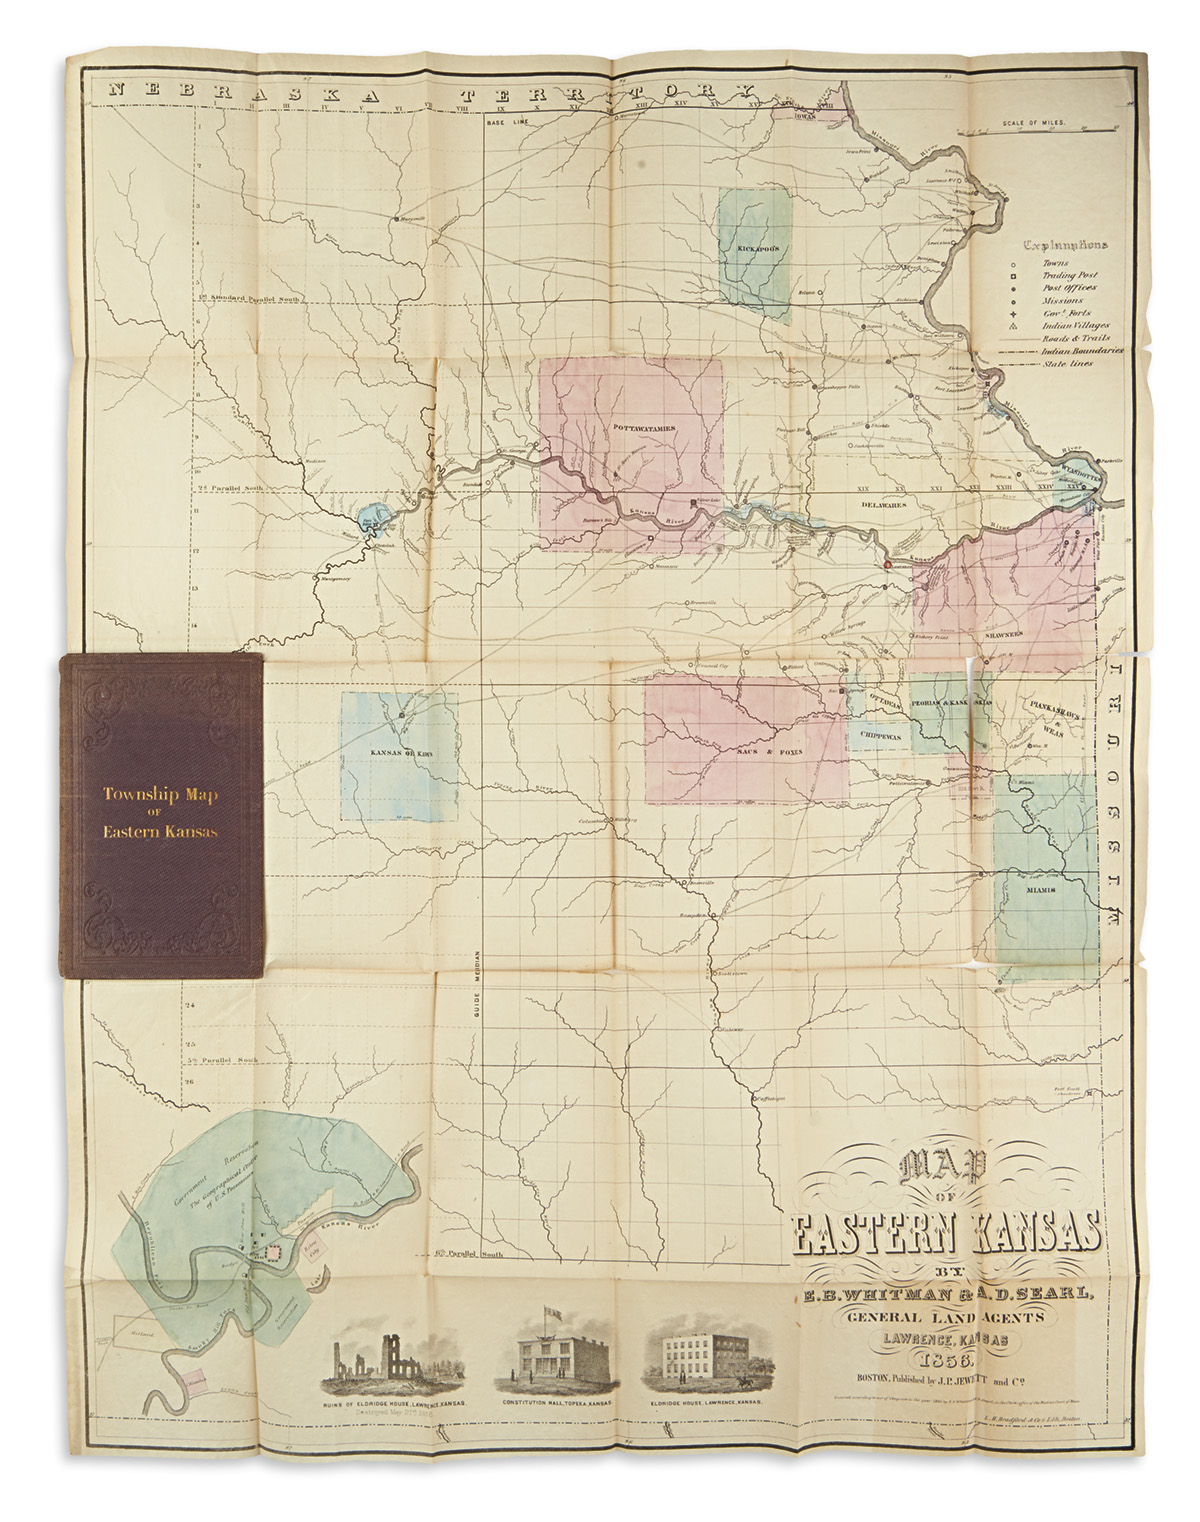 (KANSAS)-WHITMAN-EB;-AND-SEARL-AD-Map-of-Eastern-Kansas